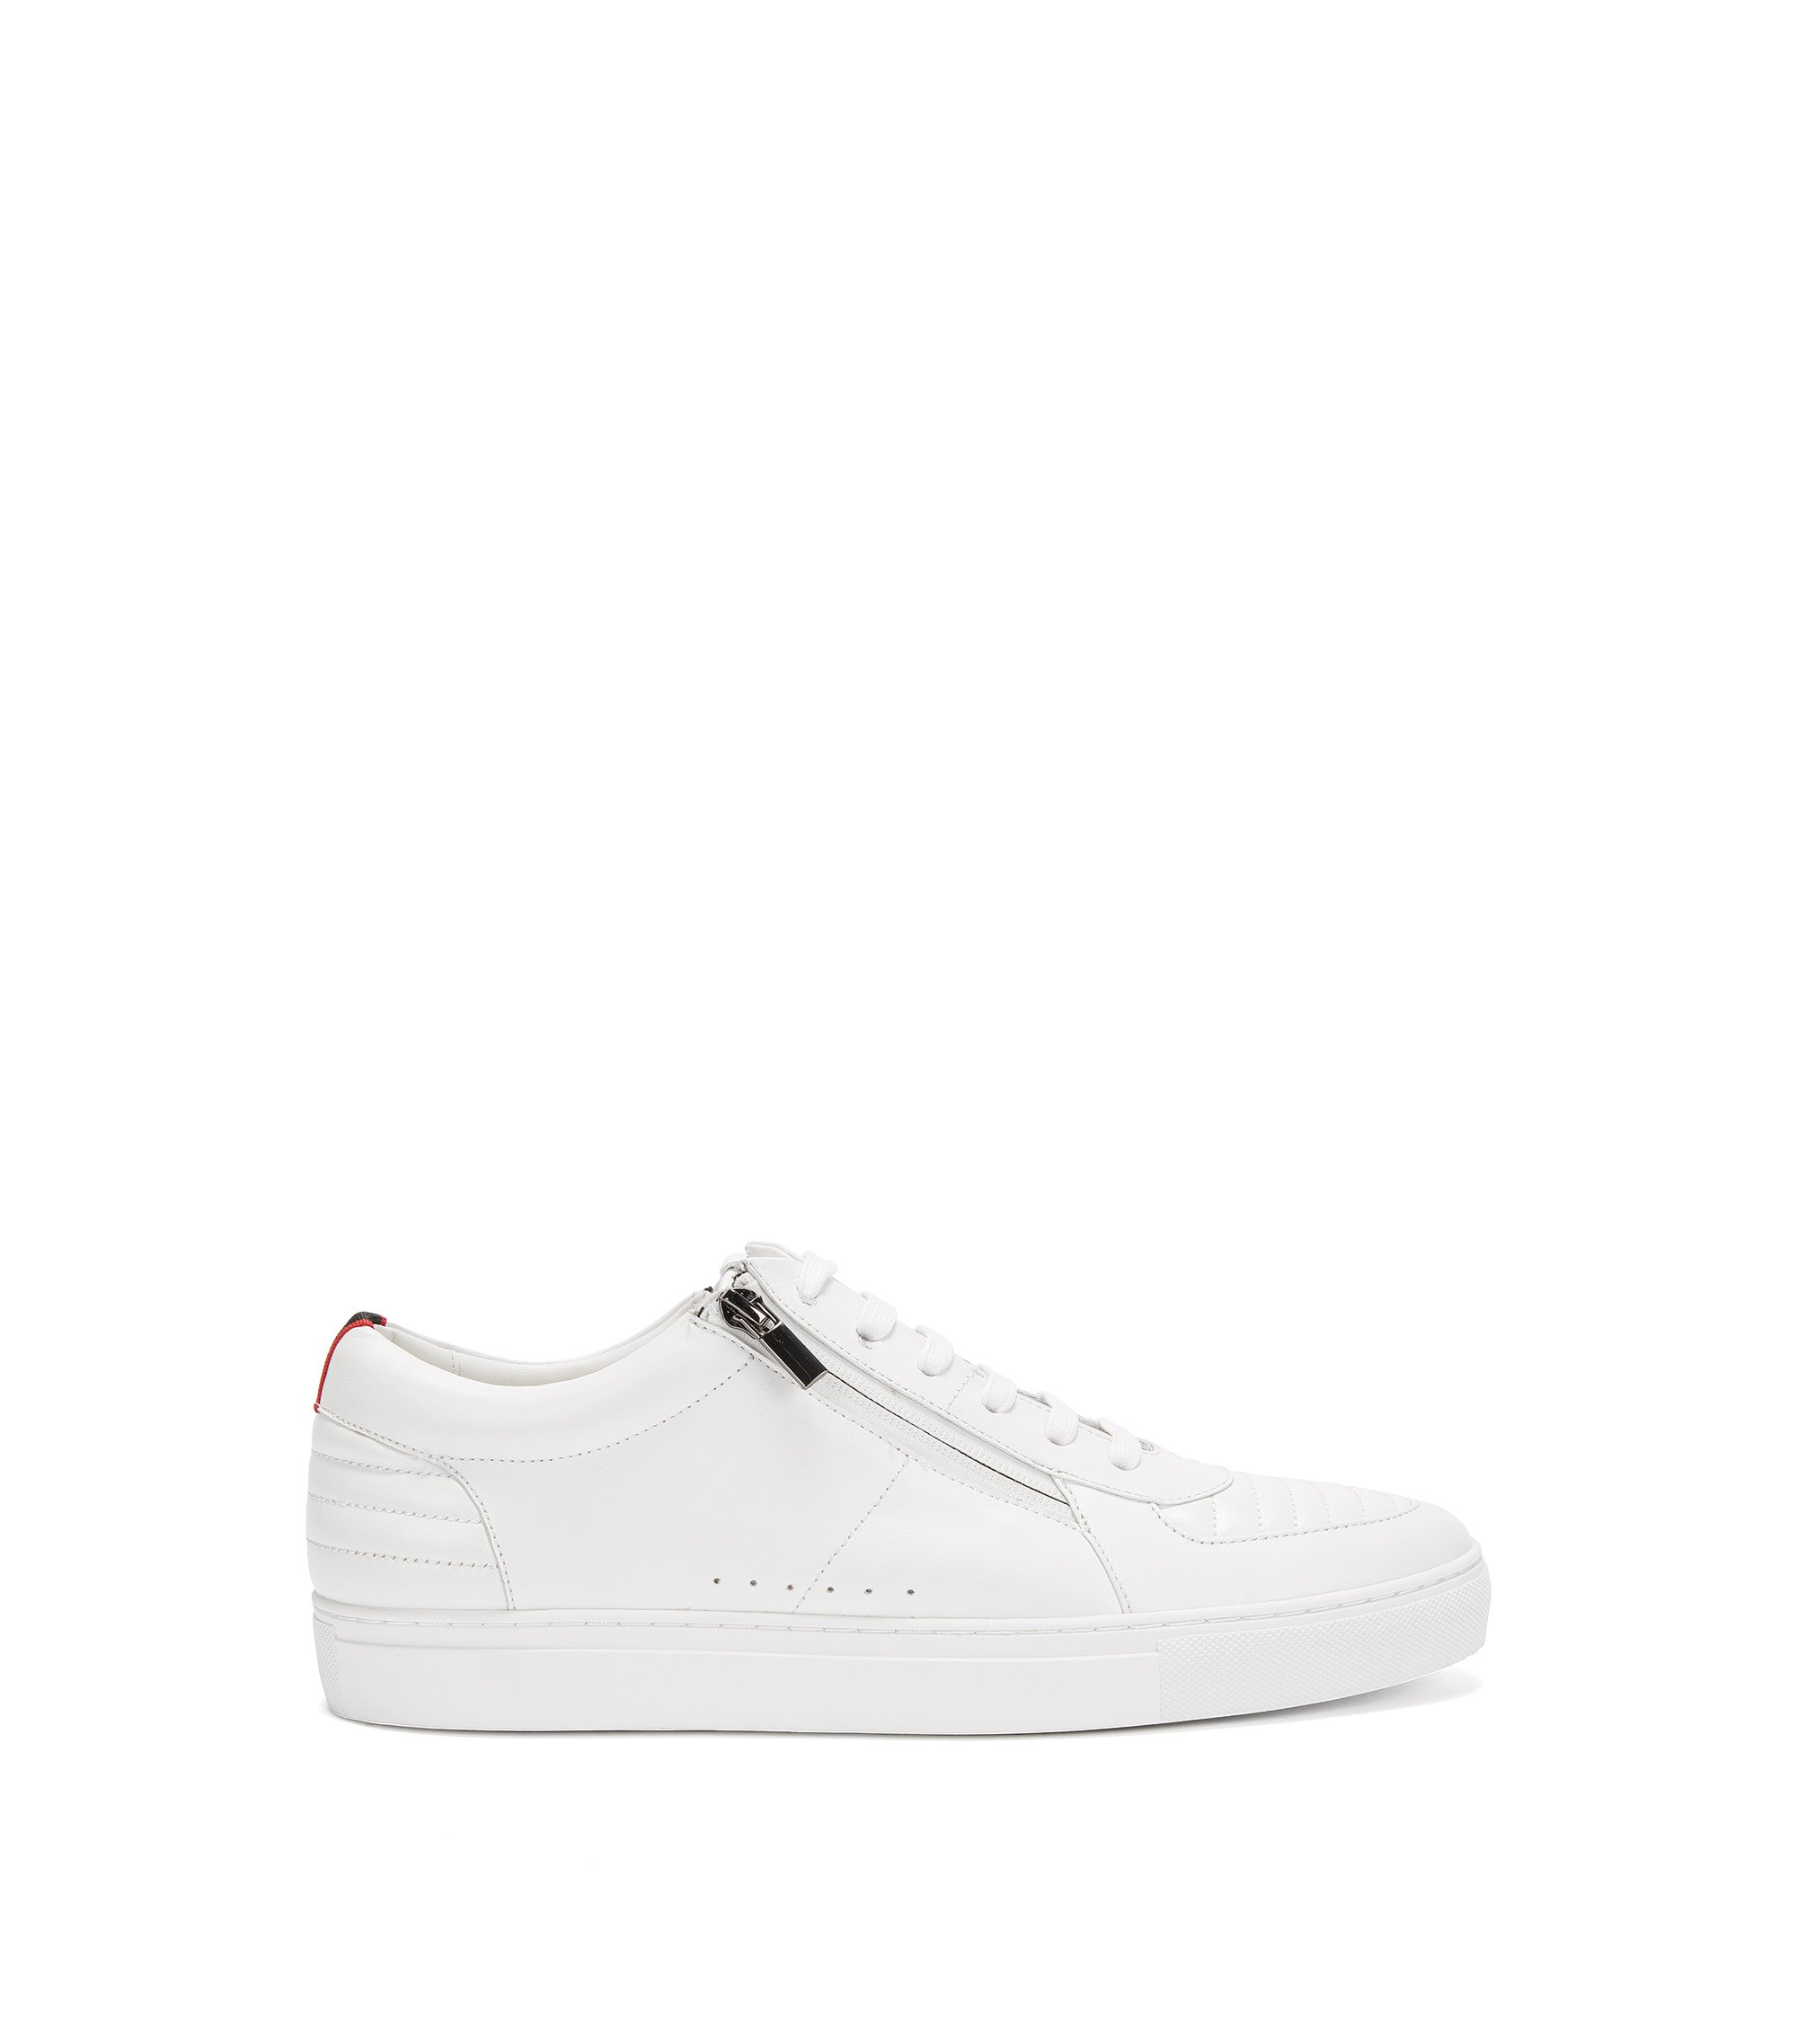 Low-top lace-up trainers in padded nappa leather, White